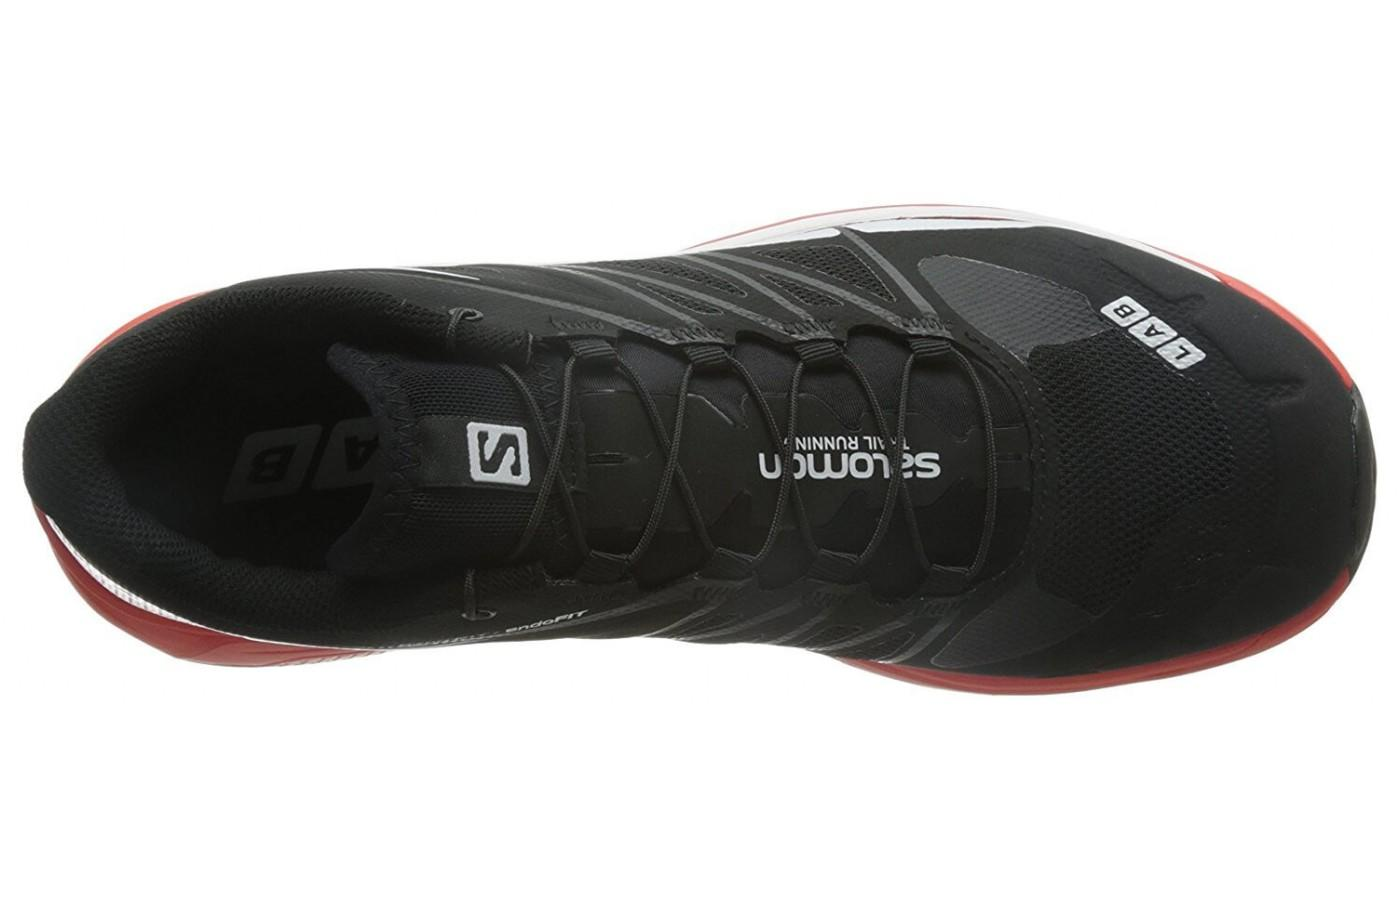 Salomon S-Lab Wings 8 SG has a QUICKLACE system